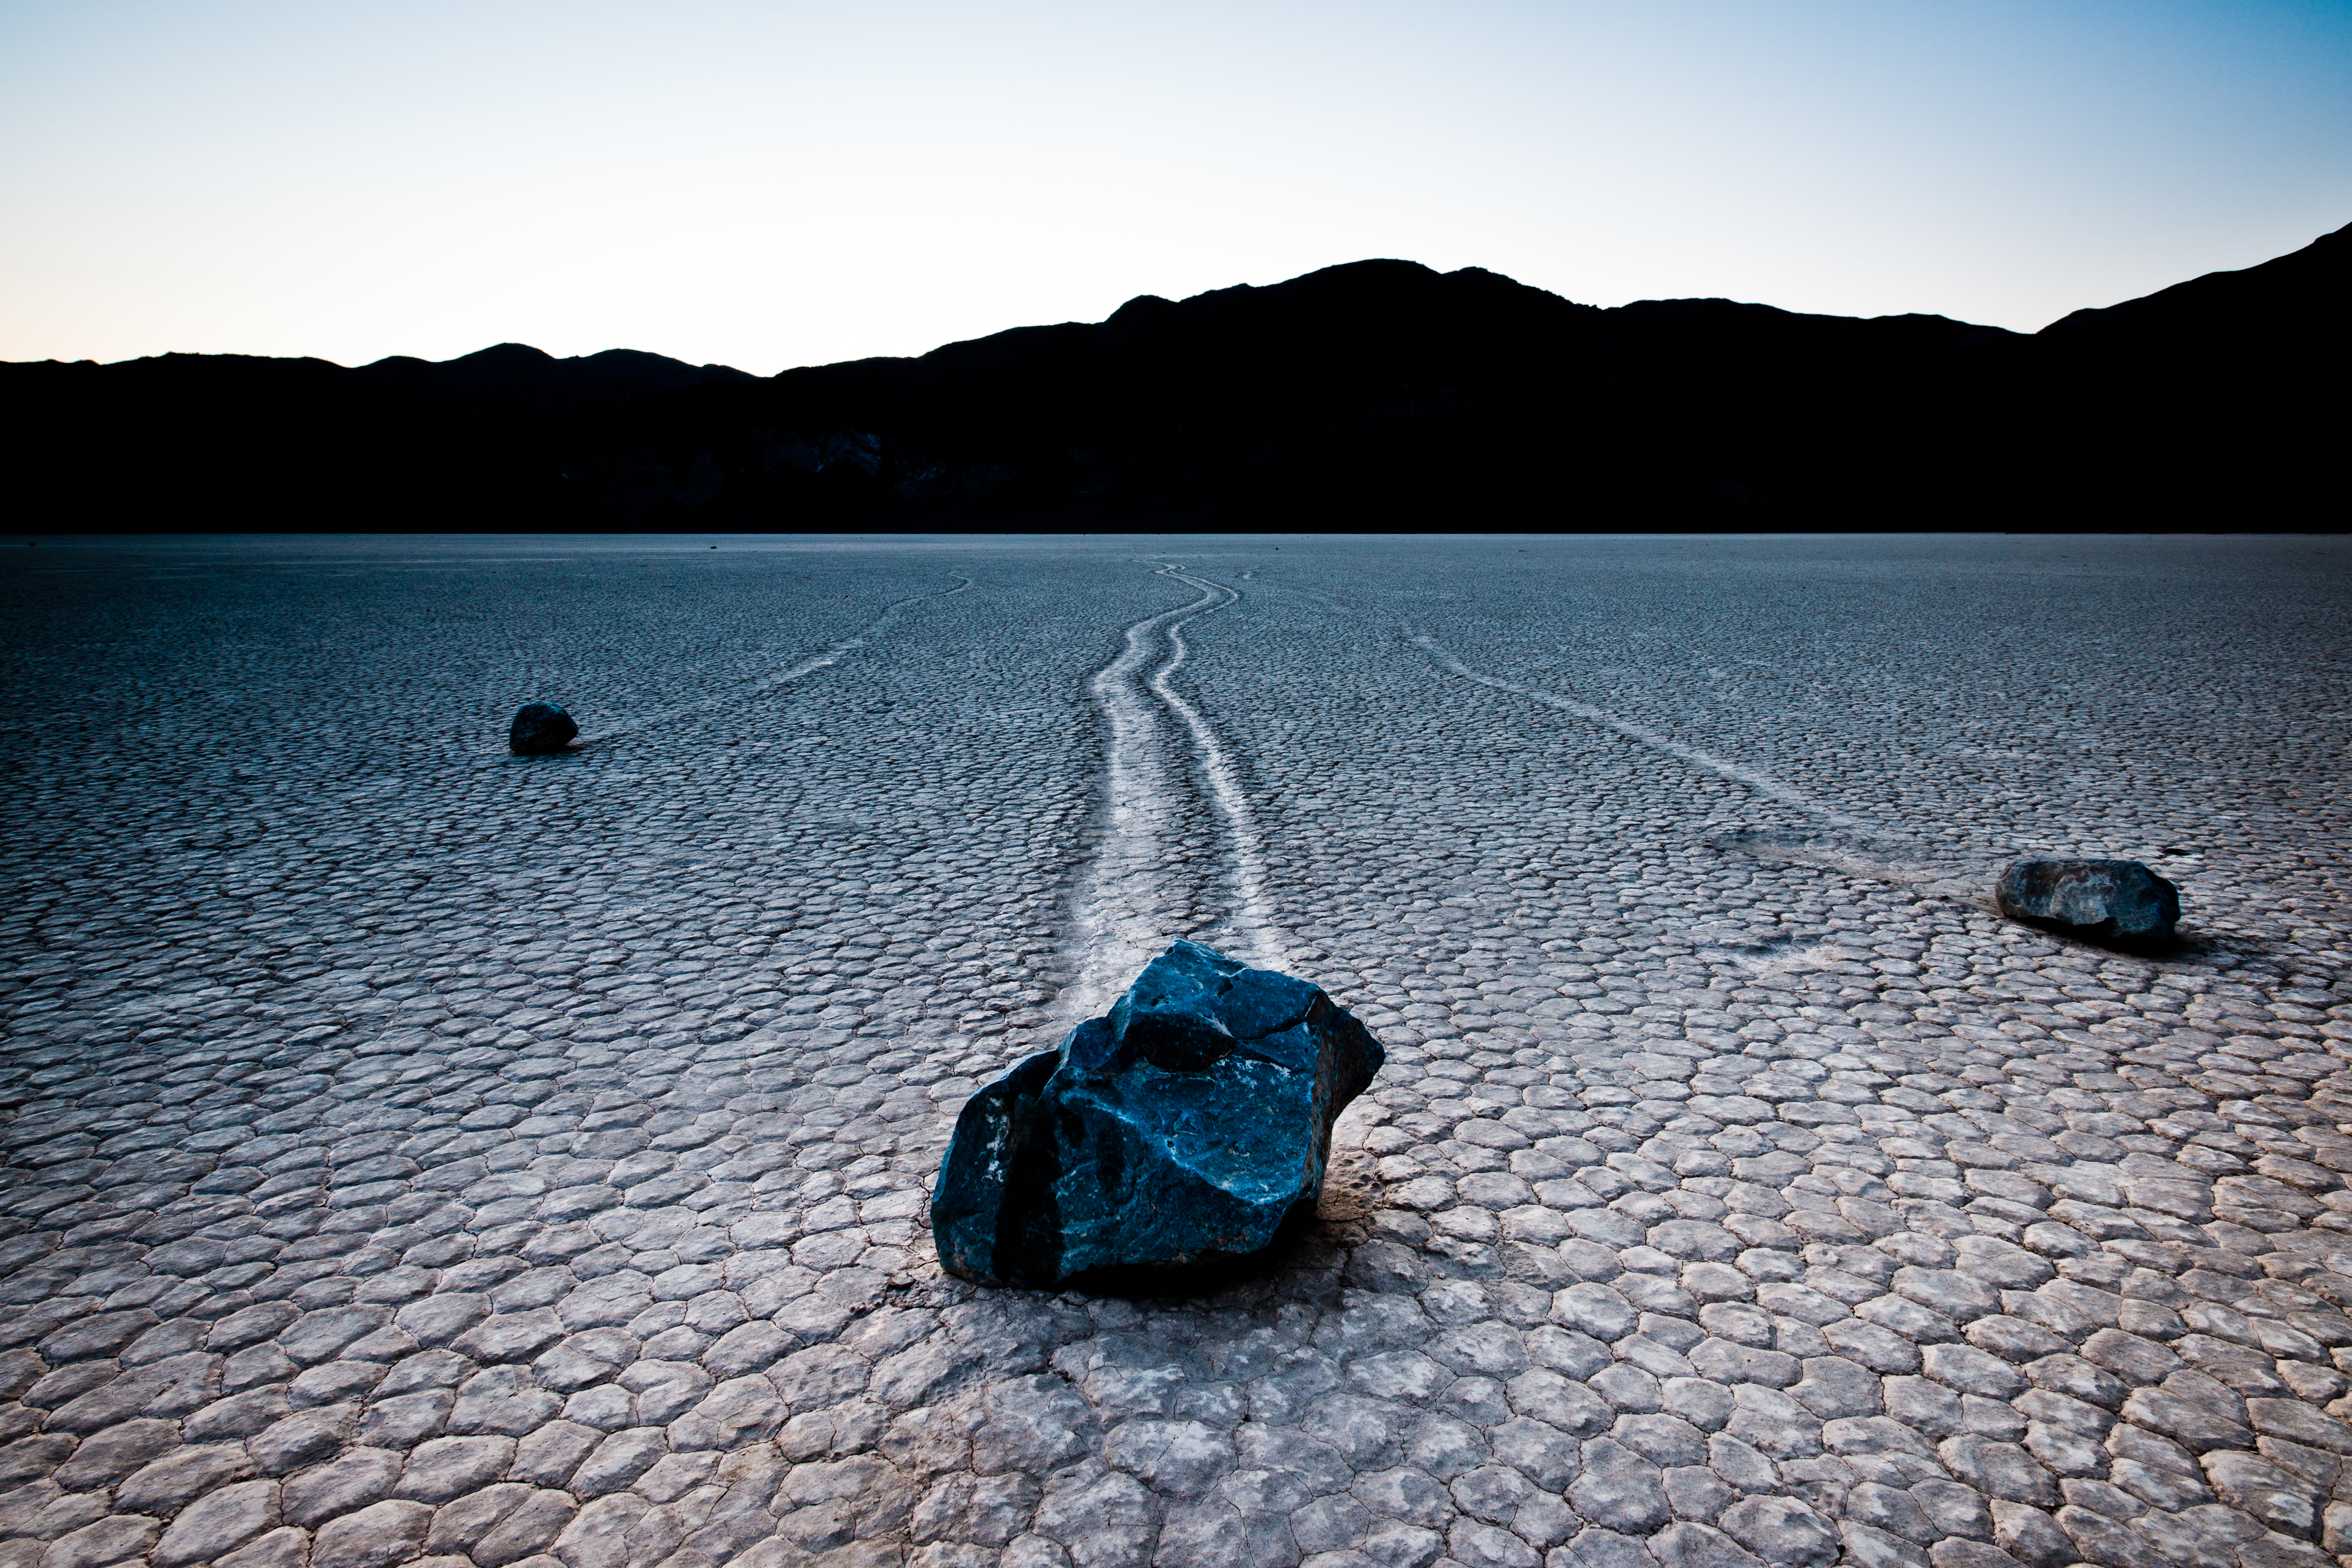 Boulders Leave A Mysterious Trail In The Surface Of A Dry Lakebed